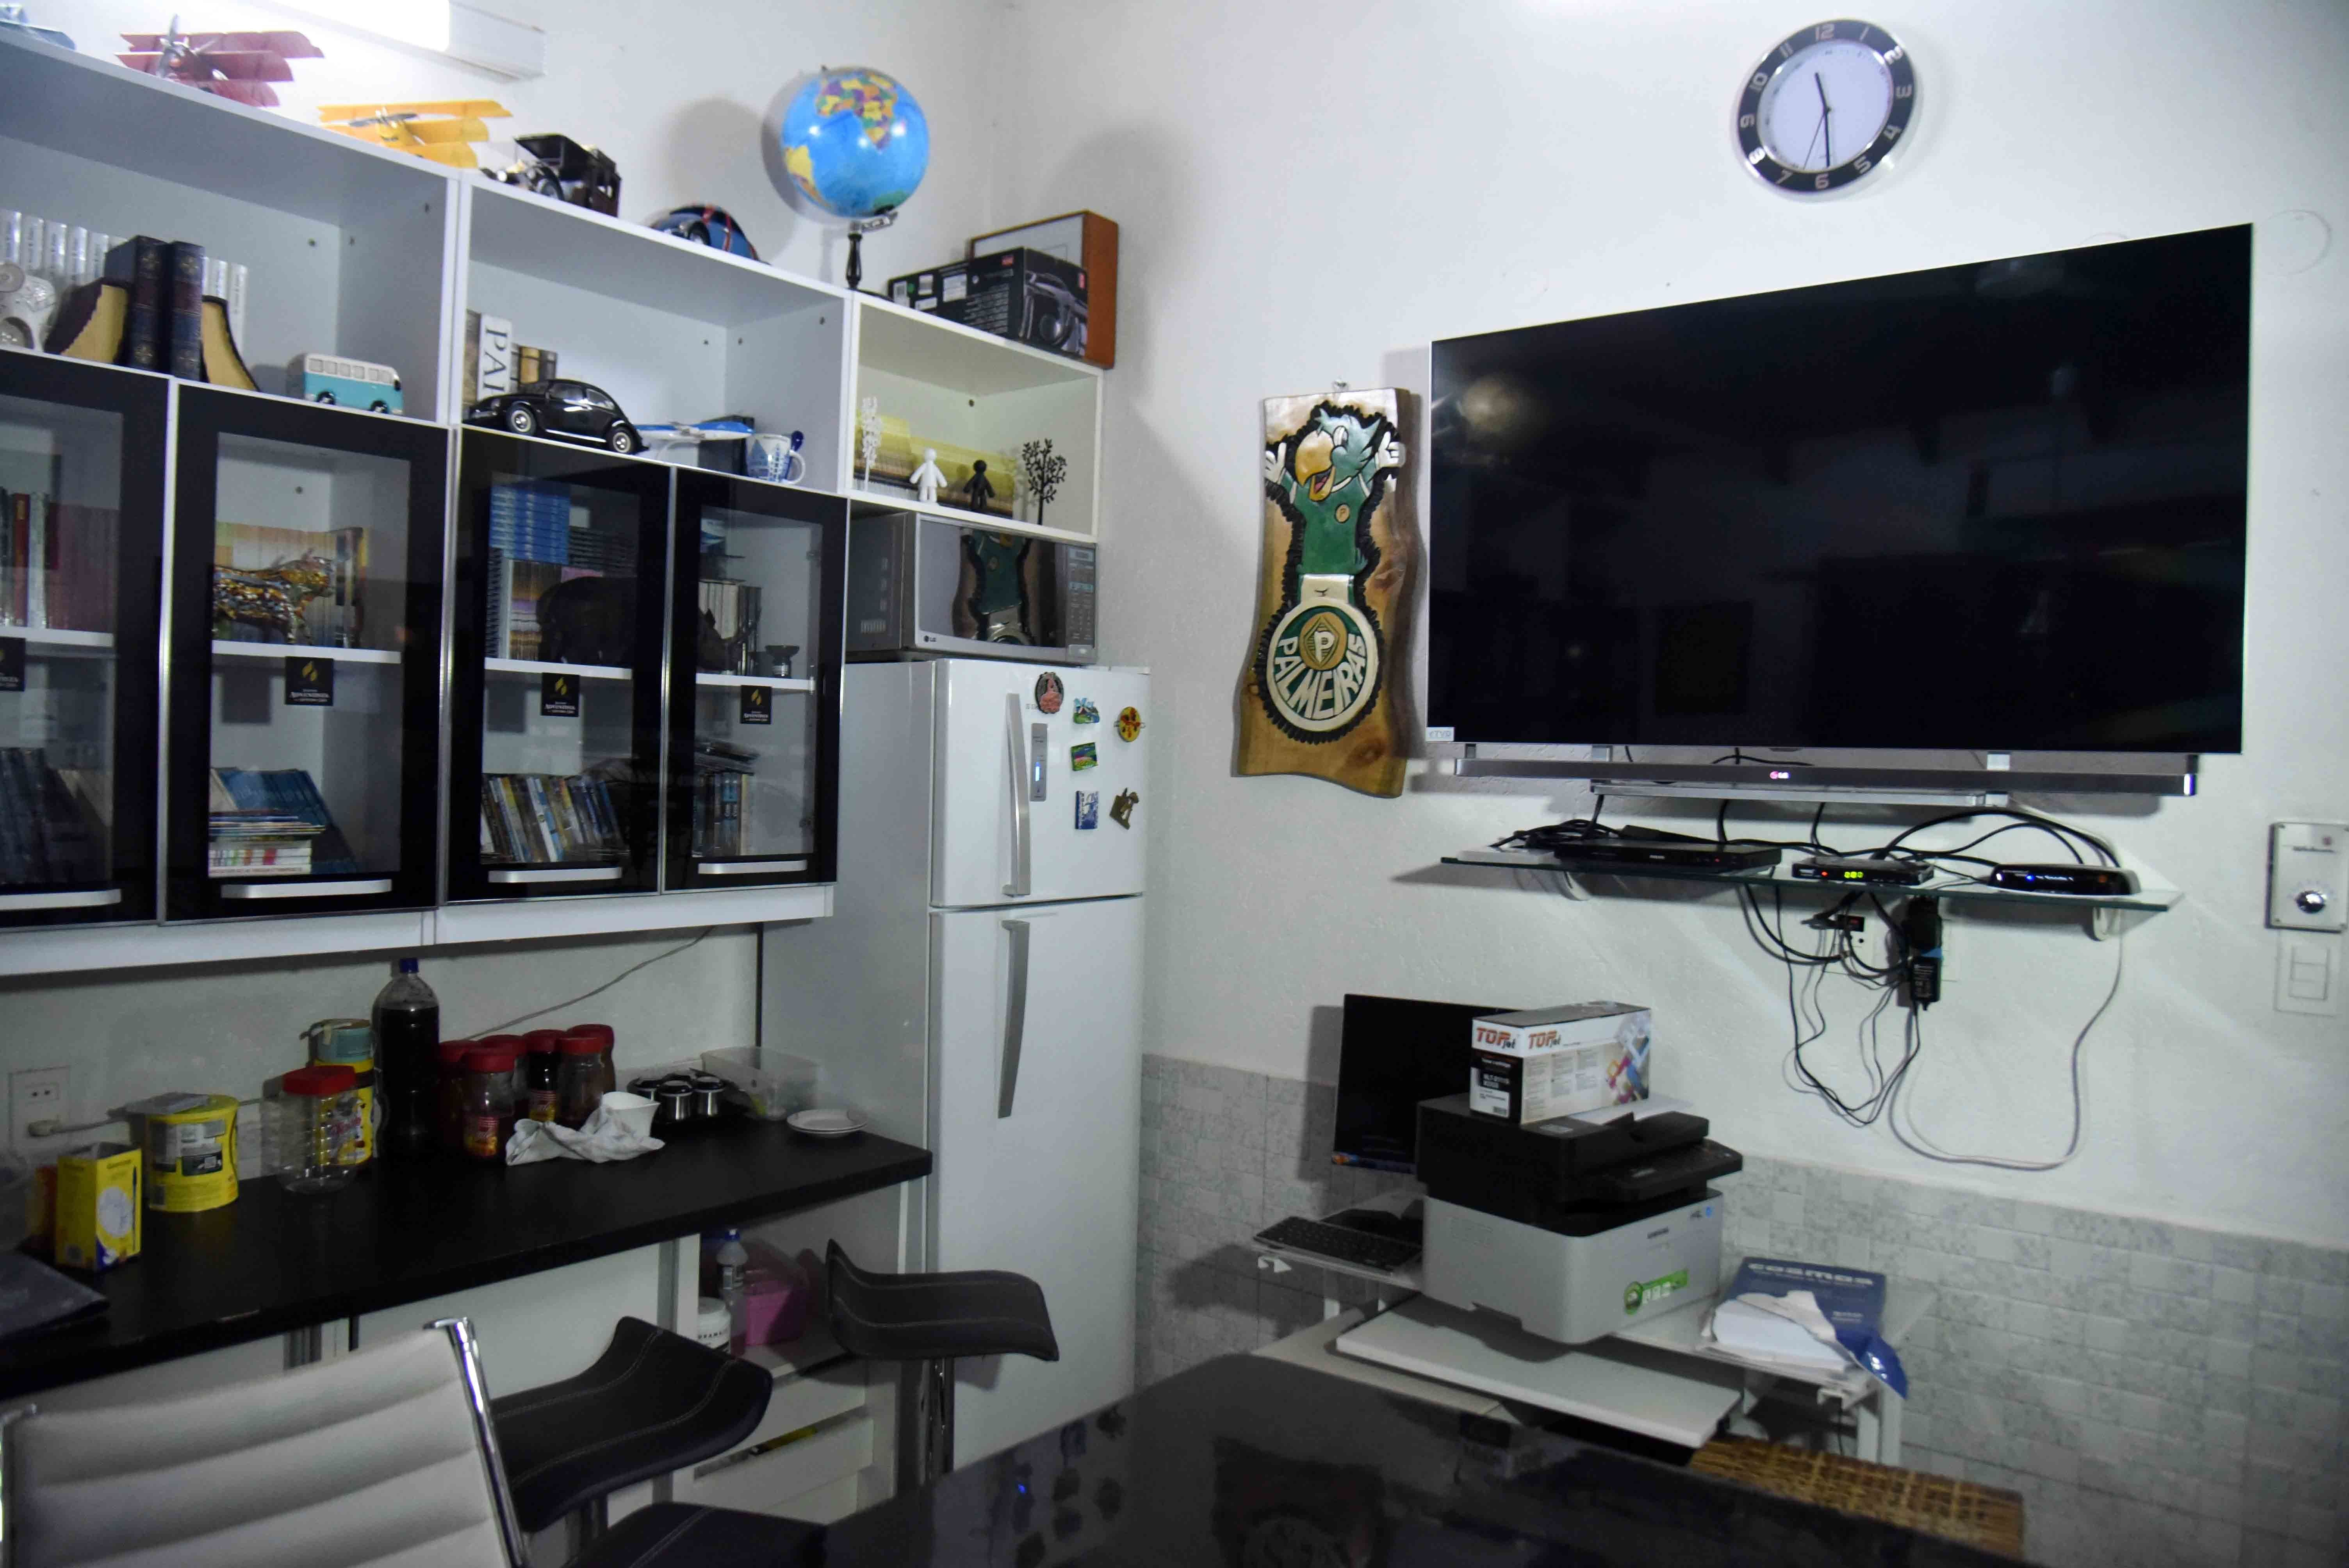 View of Brazilian drug trafficker Jarvis Chimenes Pavao's cell at Tacumbu prison in Asuncion on July 28, 2016.  Three rooms, a plasma TV, a library, and even a collection of DVDs of Colombian Pablo Escobar TV series, Jarvis Pavao Chimenes lived in a luxury cell in Tacumbu prison, one of the most crowded of Paraguay. / AFP / NORBERTO DUARTE / TO GO WITH AFP STORY        (Photo credit should read NORBERTO DUARTE/AFP/Getty Images)